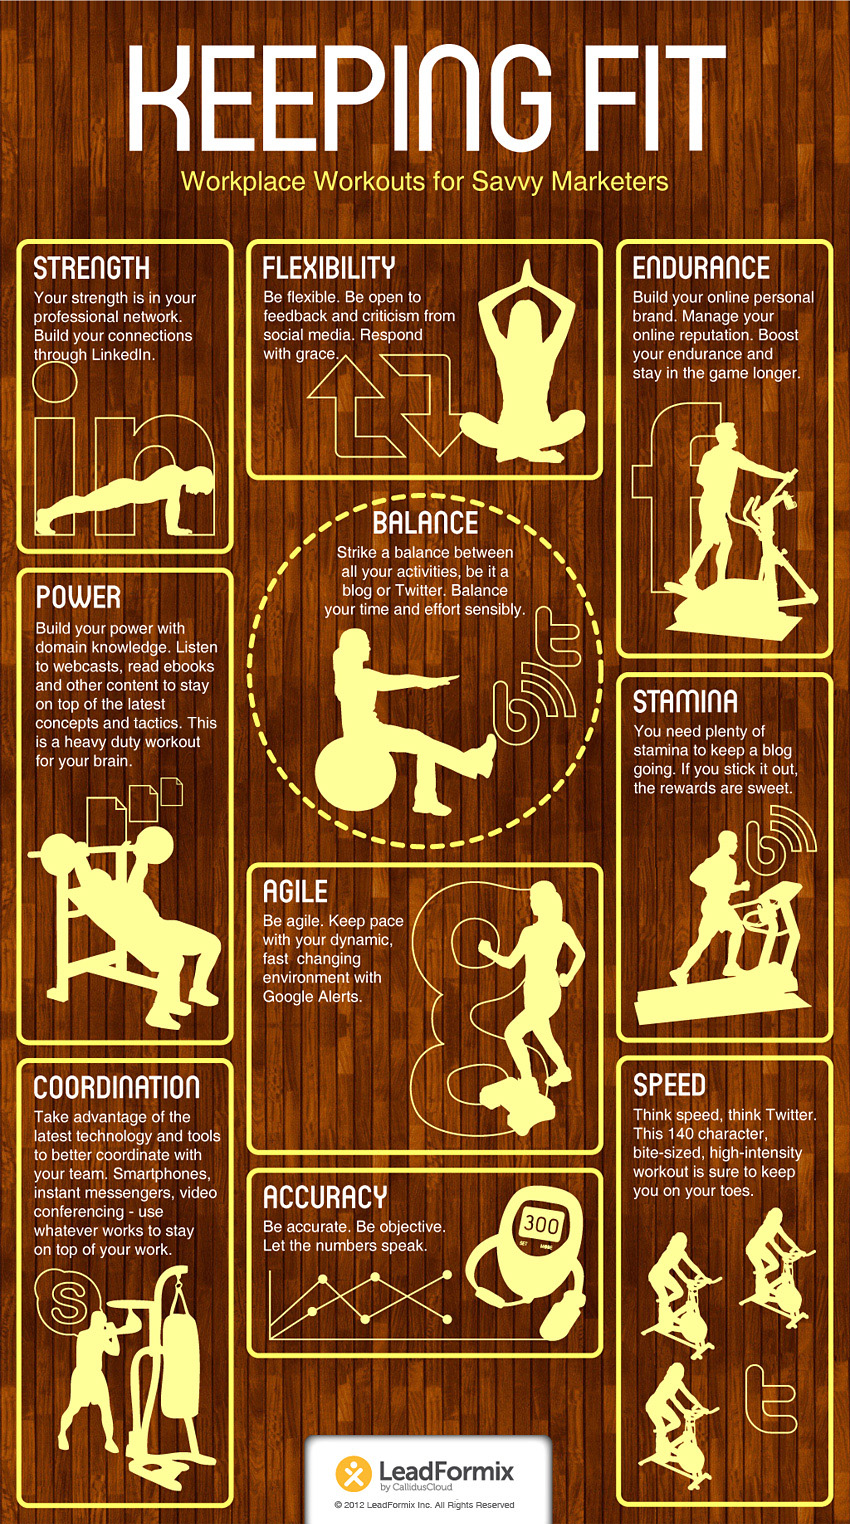 keeping-fit--workplace-workouts-for-savvy-marketers_506172a179226